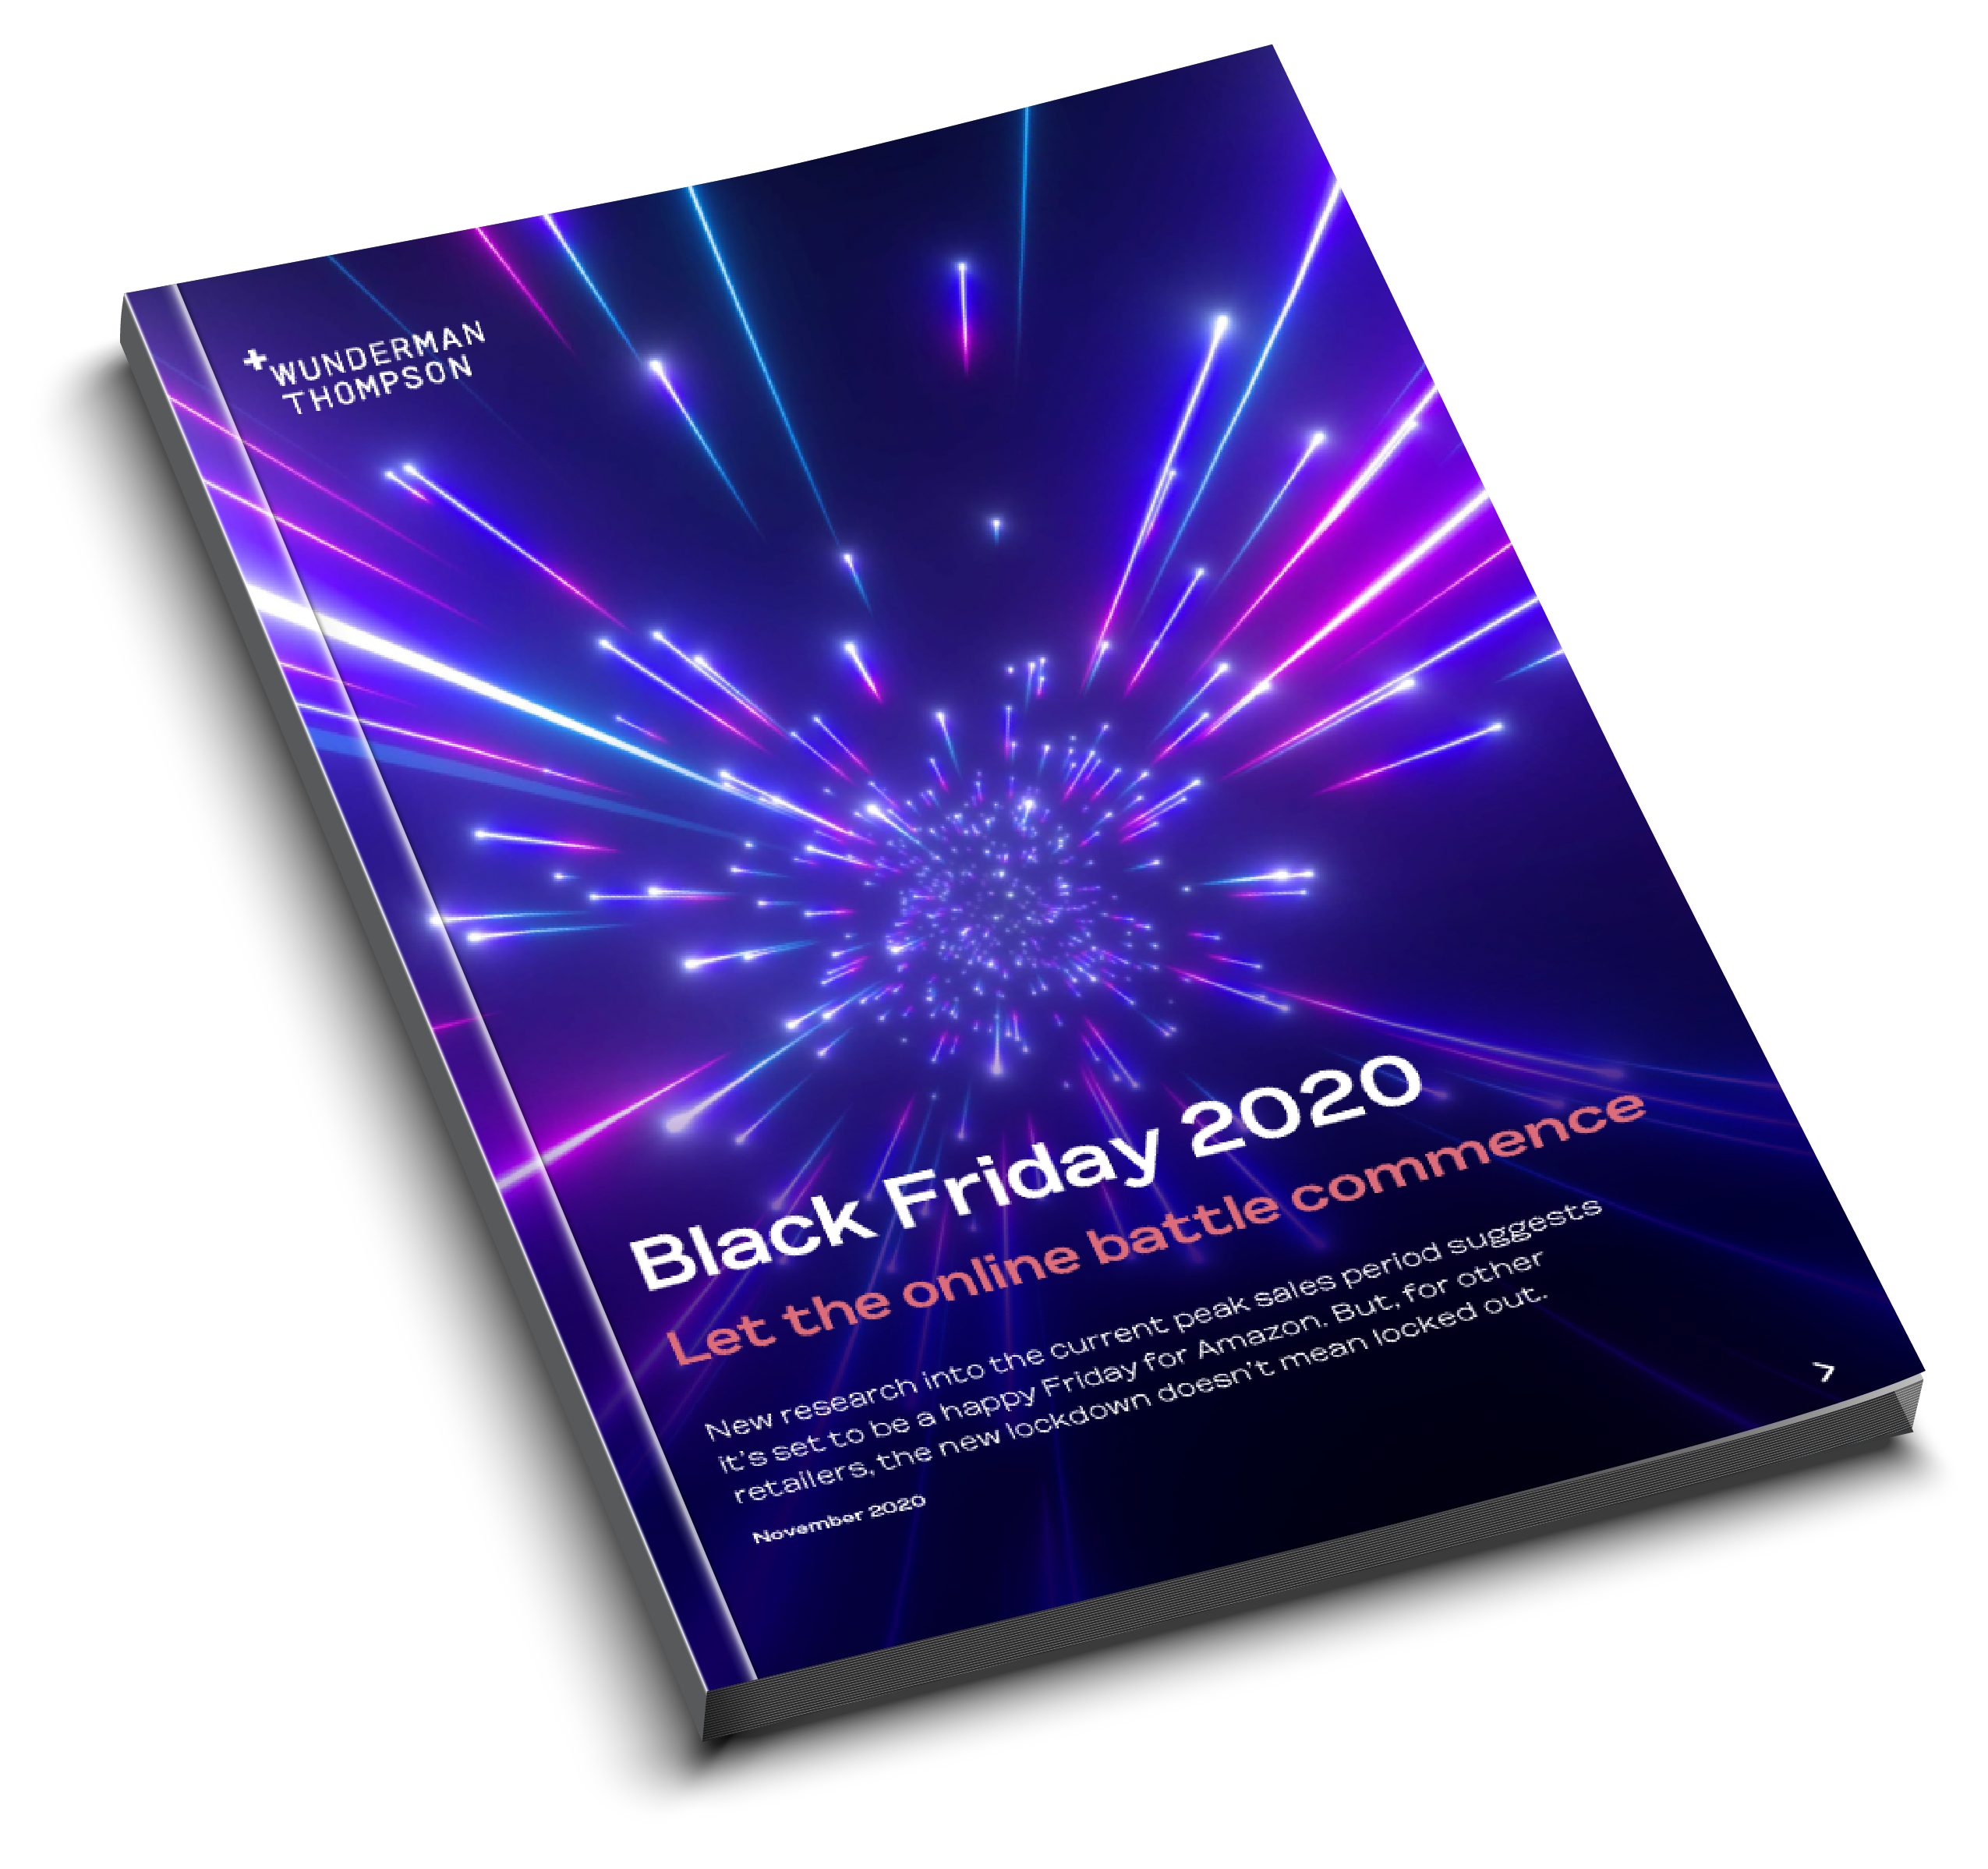 Black Friday 2020 brochure